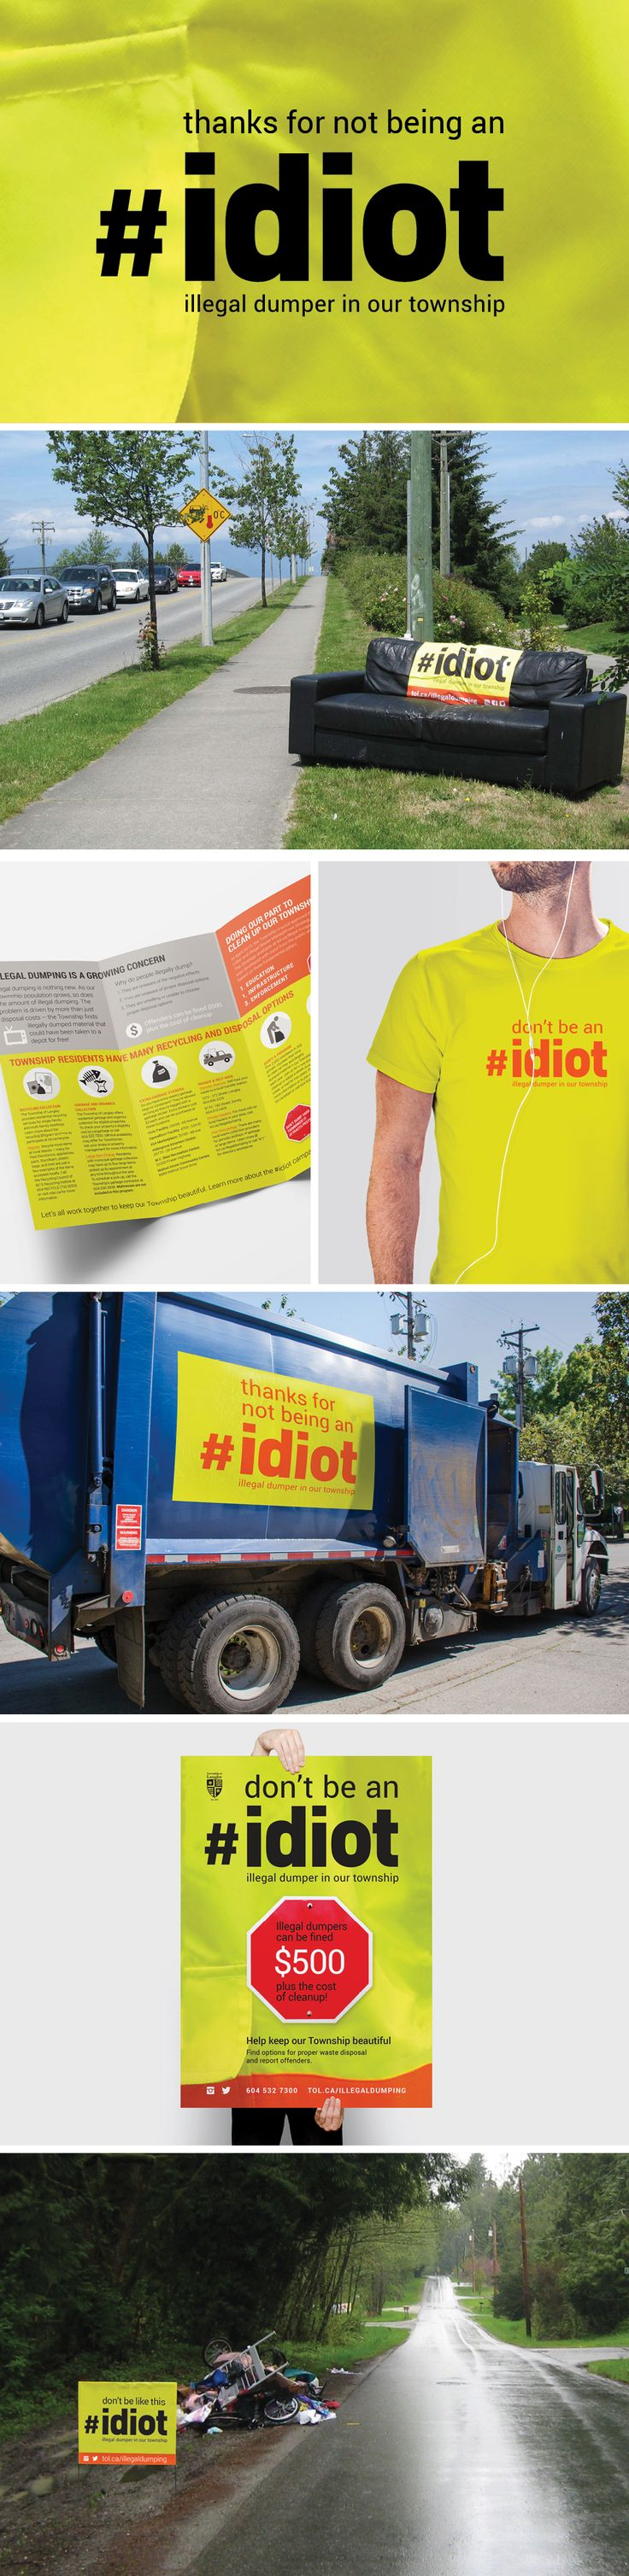 Township of Langley Idiot Campaign. Encouraging residents to stop illegal dumping in their town and keep their home beautiful and clean | Ion Brand Design #strategy #placebranding #guerilla marketing #recycling #Town #City #graphicdesign